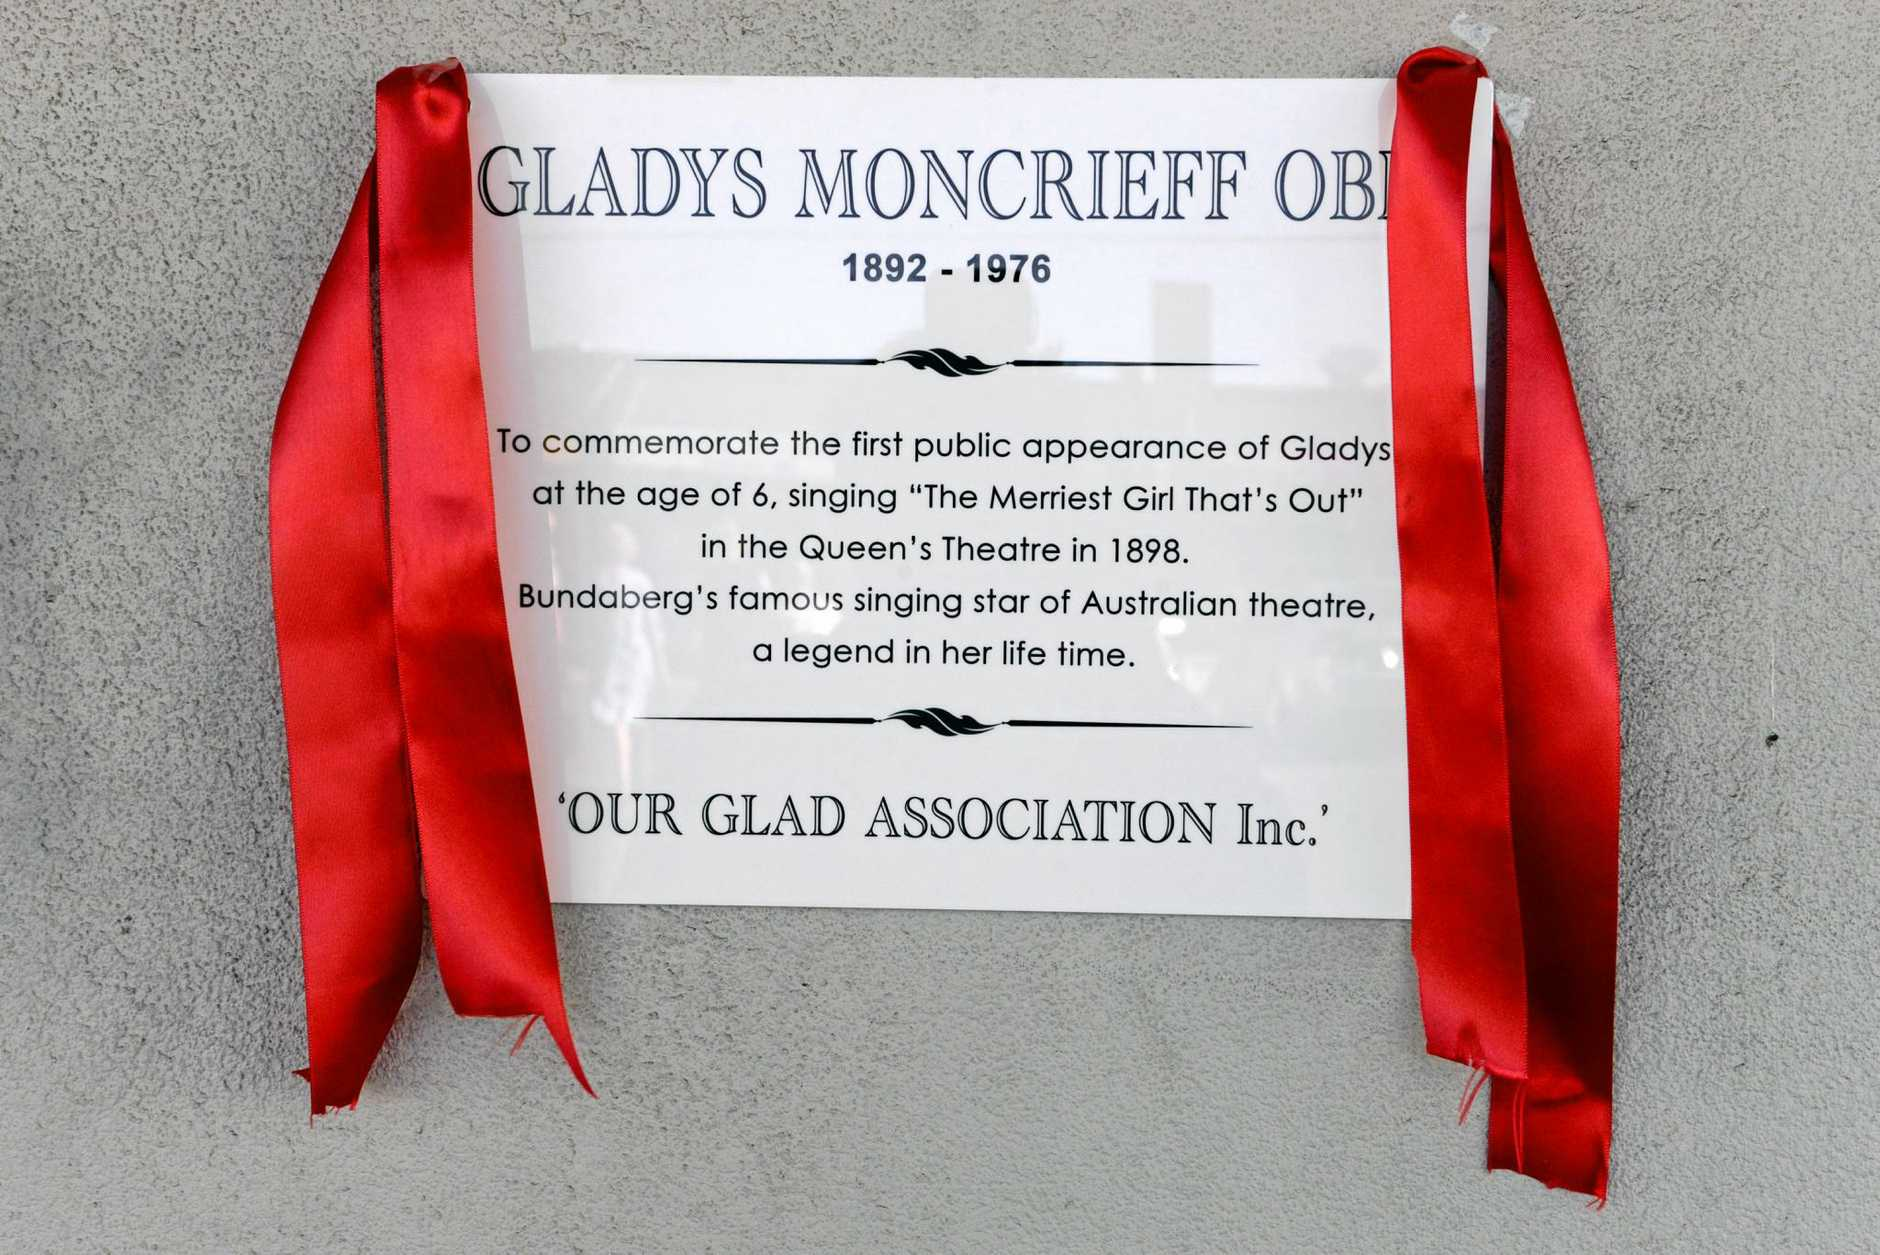 OUR GLAD: The plaque commemorating the first public appearance of Gladys at the age of six in the Queens Theatre in 1898.